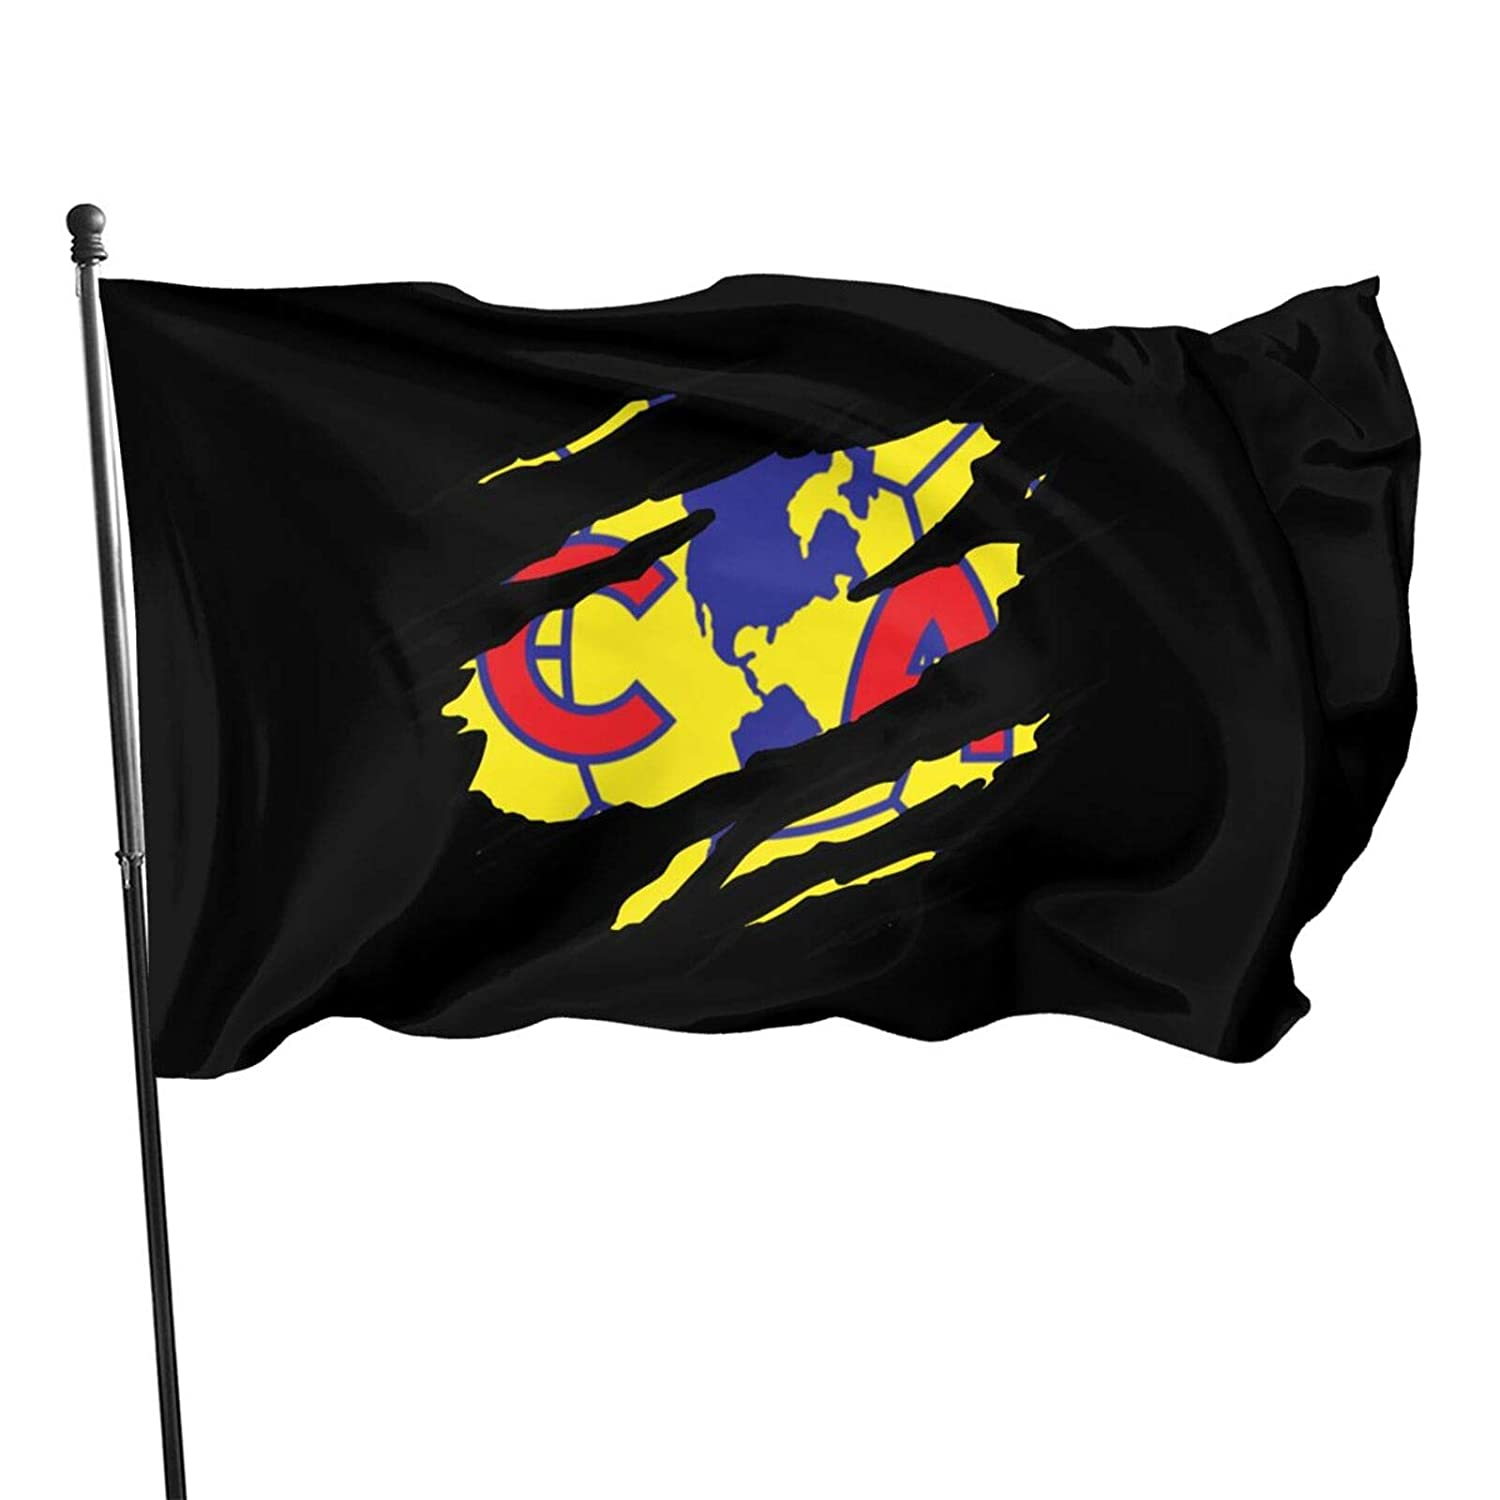 Torn Club America Logo 3 X 5 Feet Flag Resistance To Fade 3 X 5 Ft Flag Uv Protection Ft Garden Flag Party Decorations,Parades,Election Day Celebration Event For Outdoor Indoor Home Deco